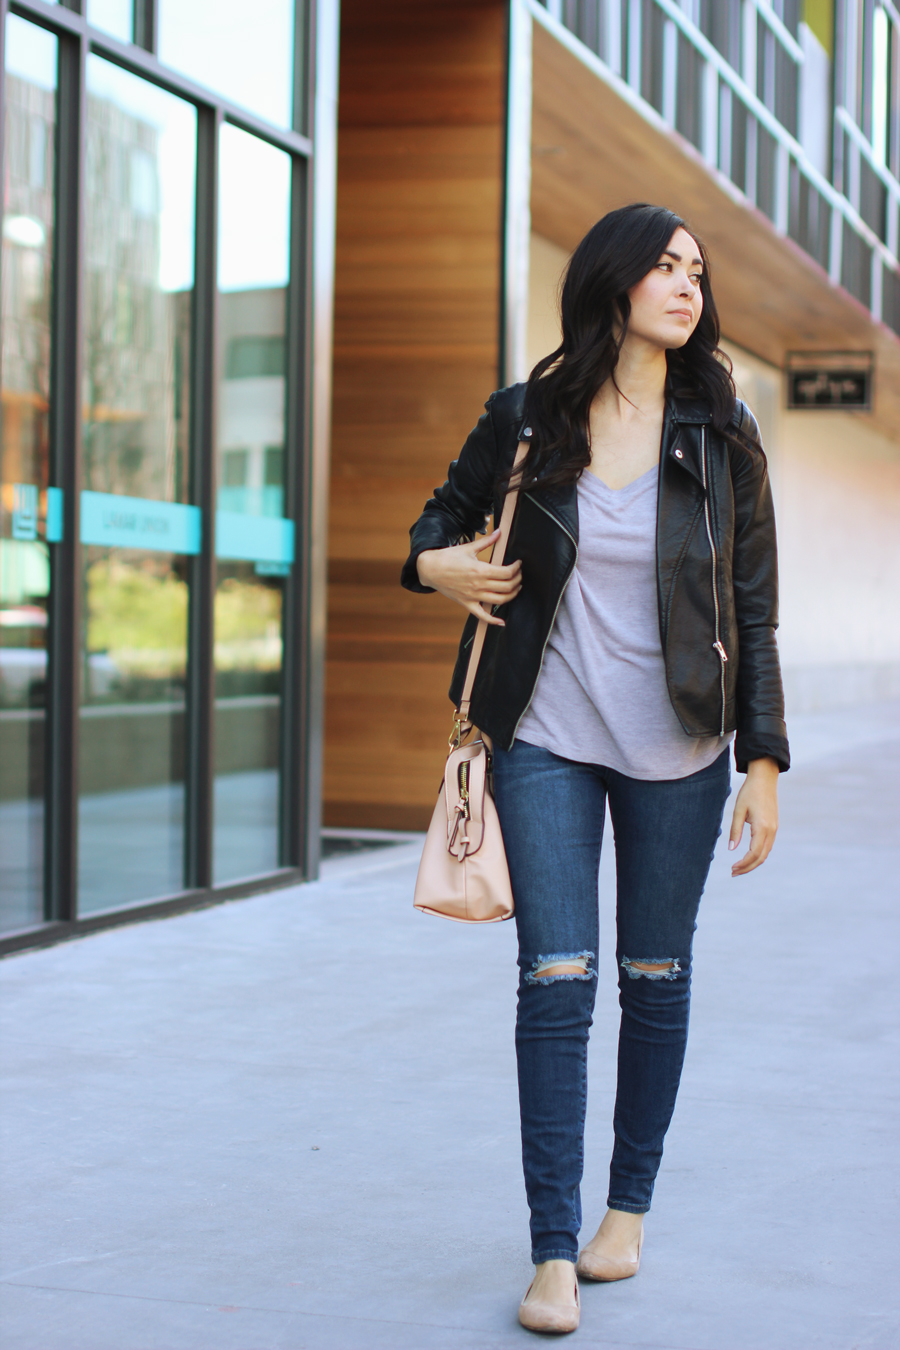 FTT-RIPPED-JEANS-LEATHER-JACKET-CASUAL-ALAMO-DRAFTHOUSE